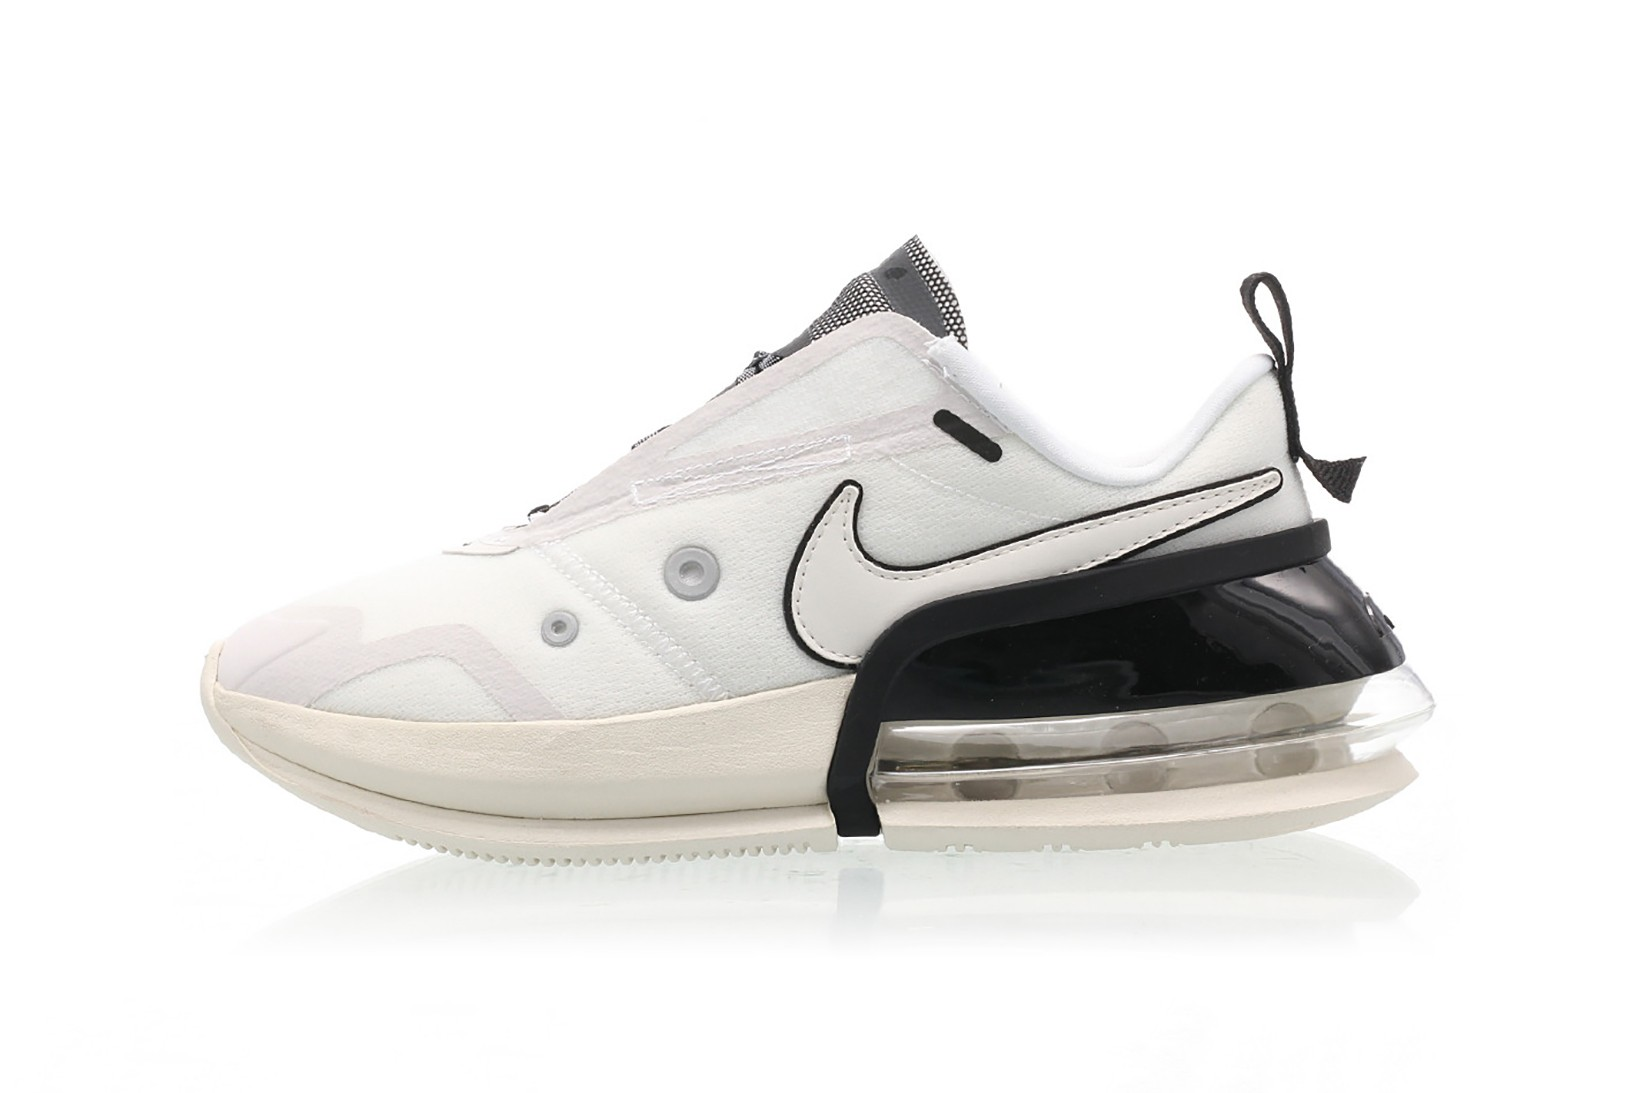 Nike Women's Air Max Up Sneakers White